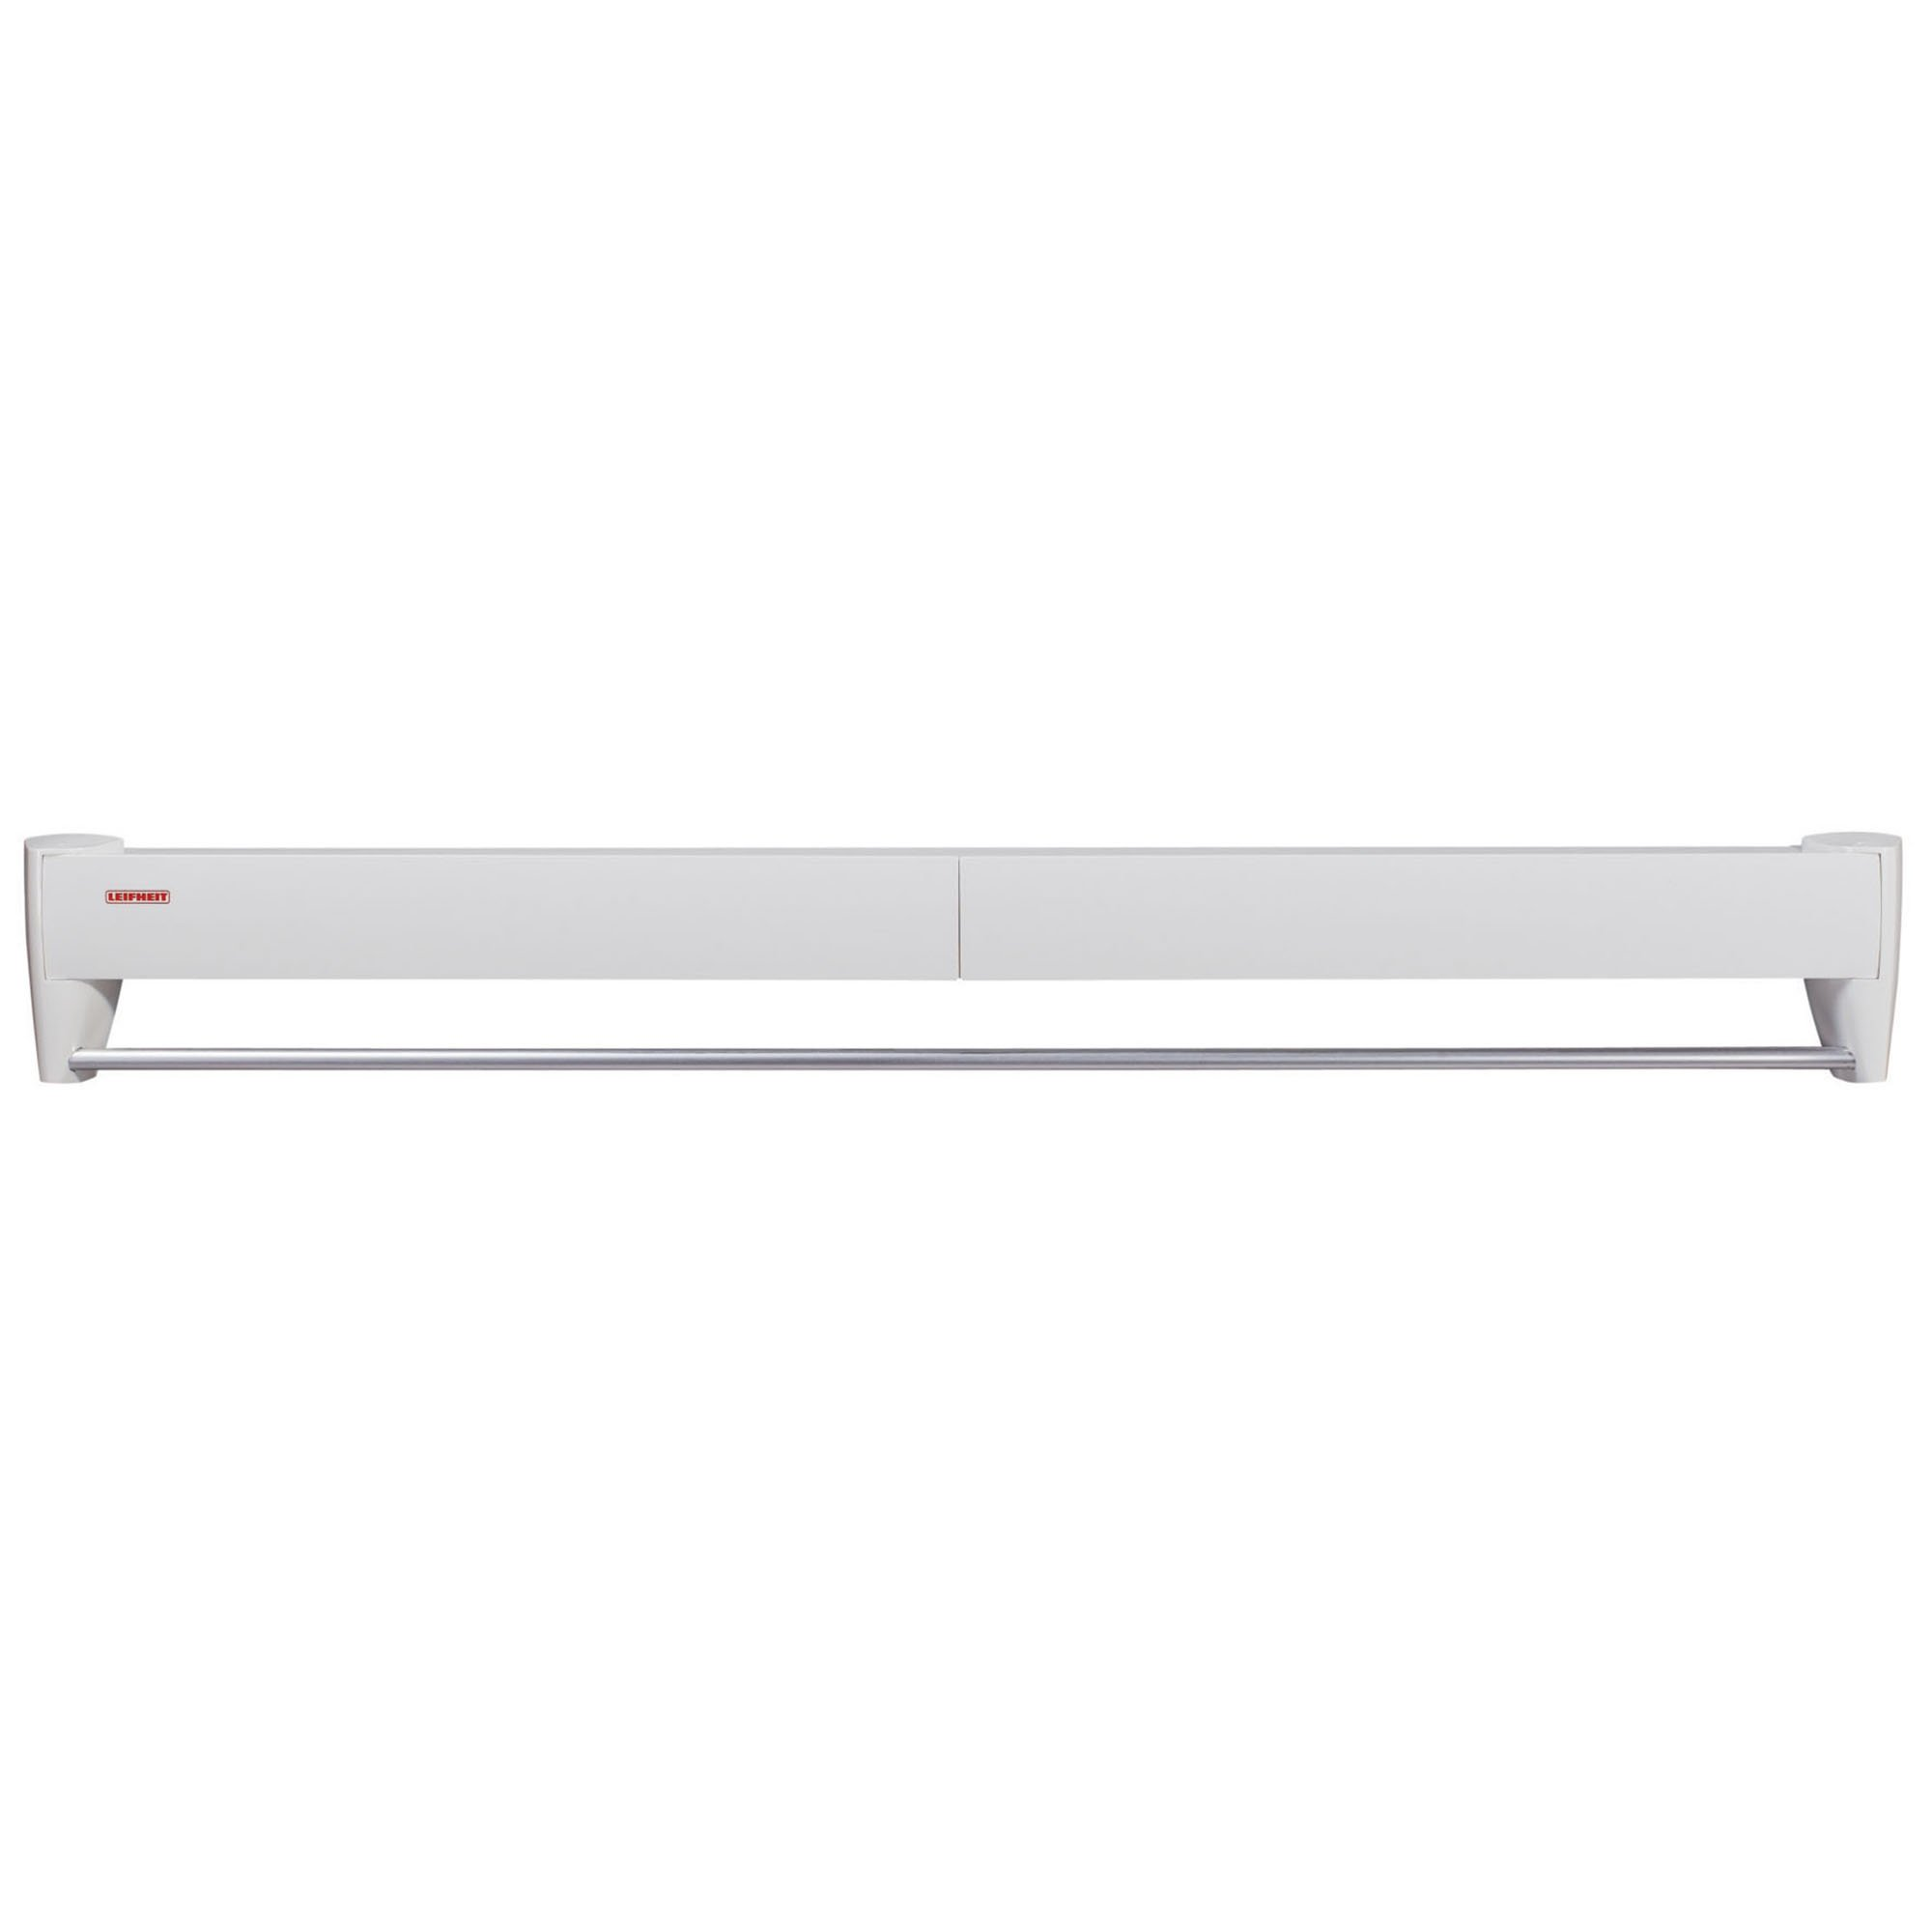 Leifheit Telegant 81 Protect Plus Tendedero de Pared, Metal, Blanco, 10.5 x 101.5